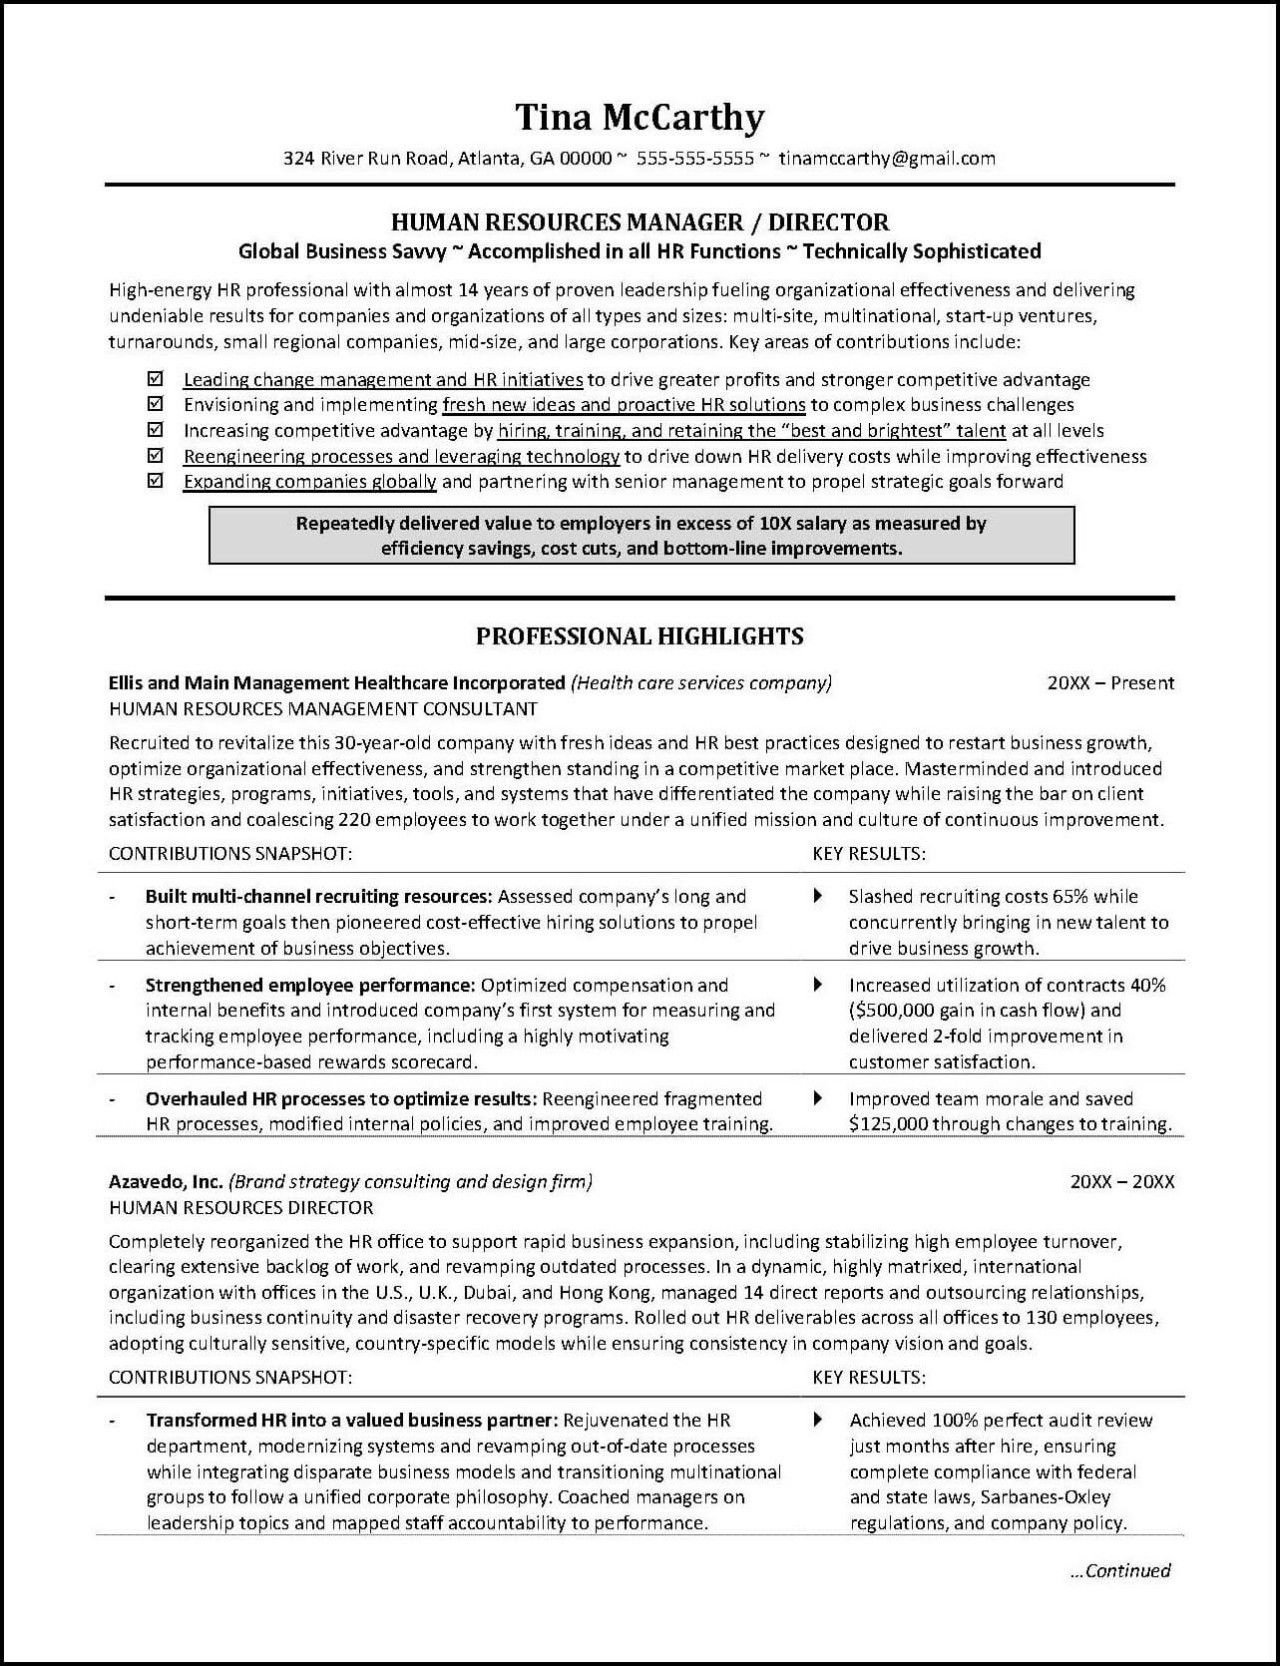 human resources resume example dental office receptionist how to do a with no job experience it career objective examples